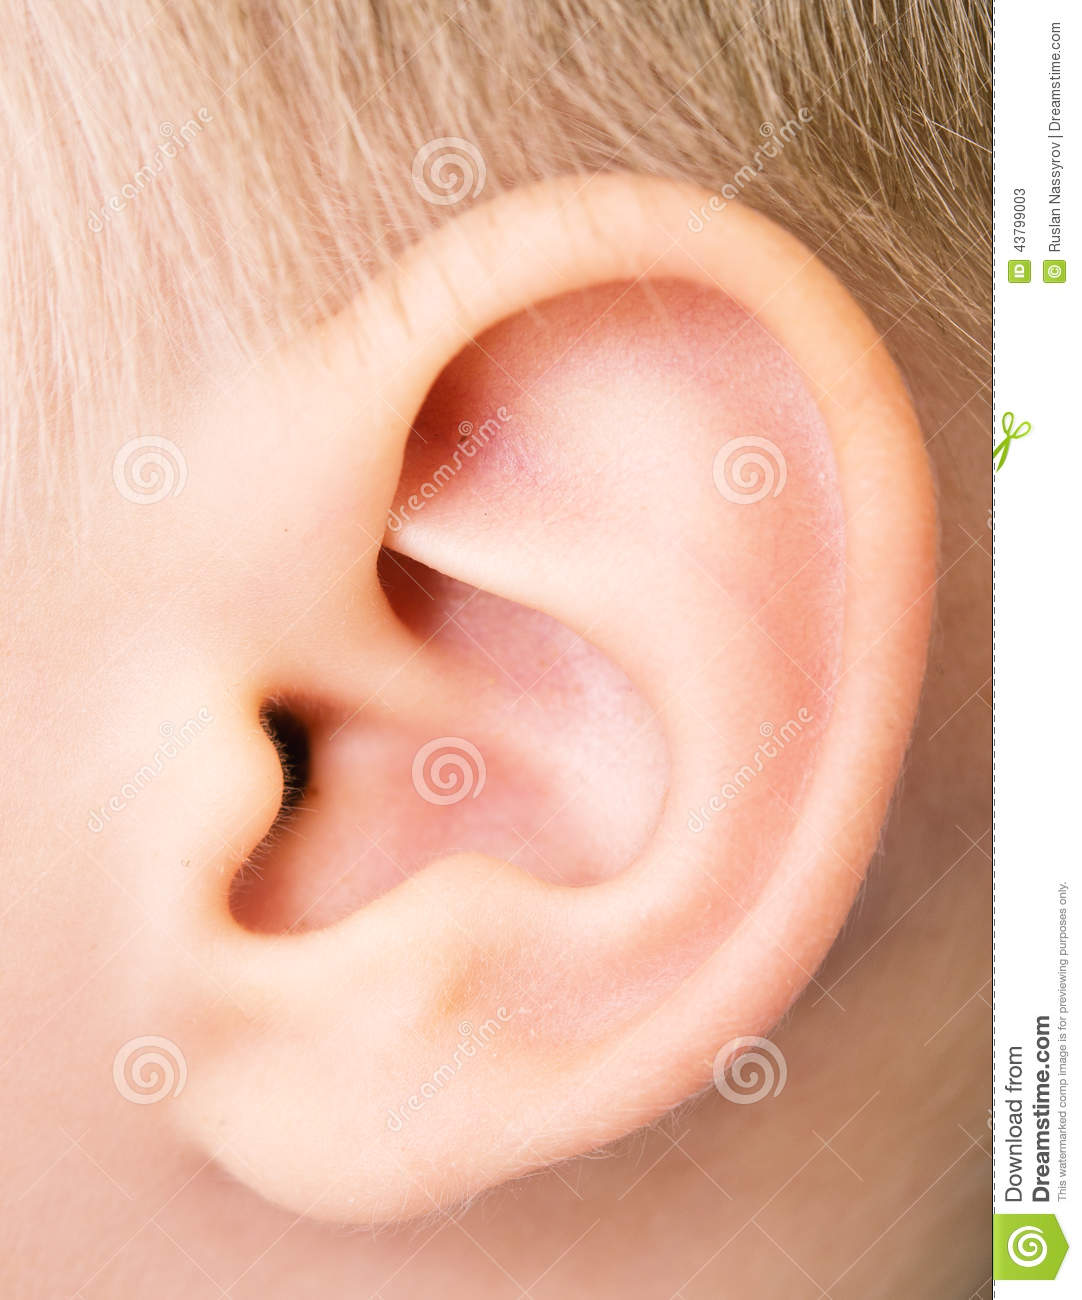 Baby Ear Stock Image Image Of Care White Male Toddler